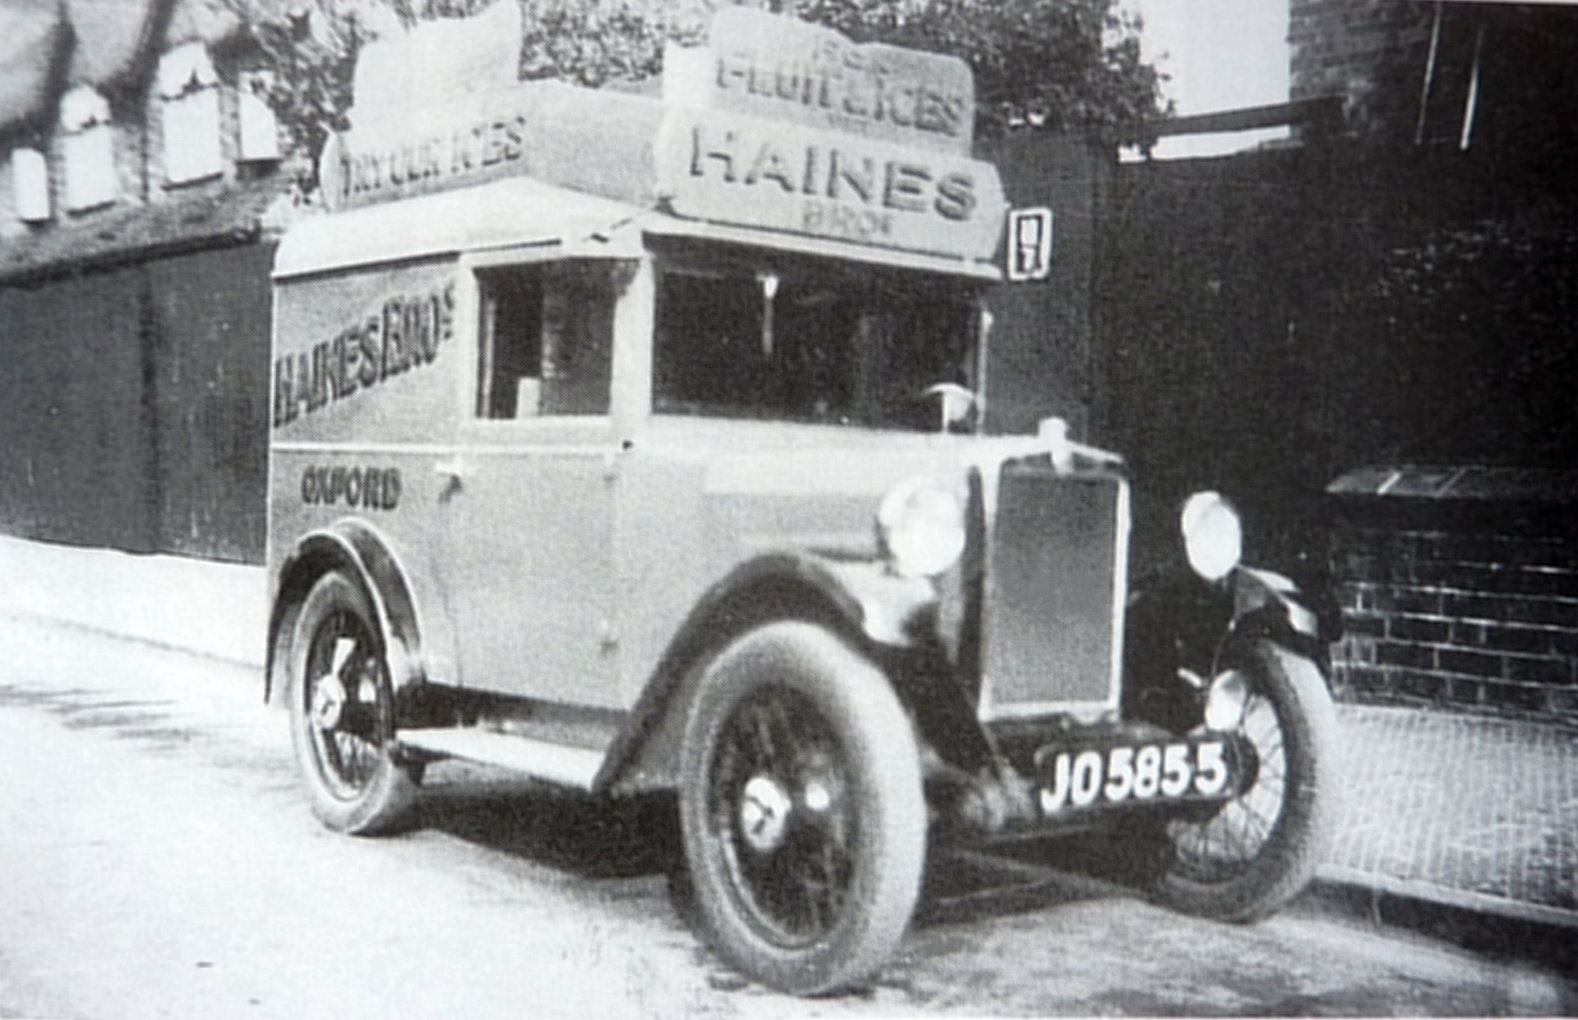 [Haines fruit  ice cream van from Changing Faces bk1 cropped]